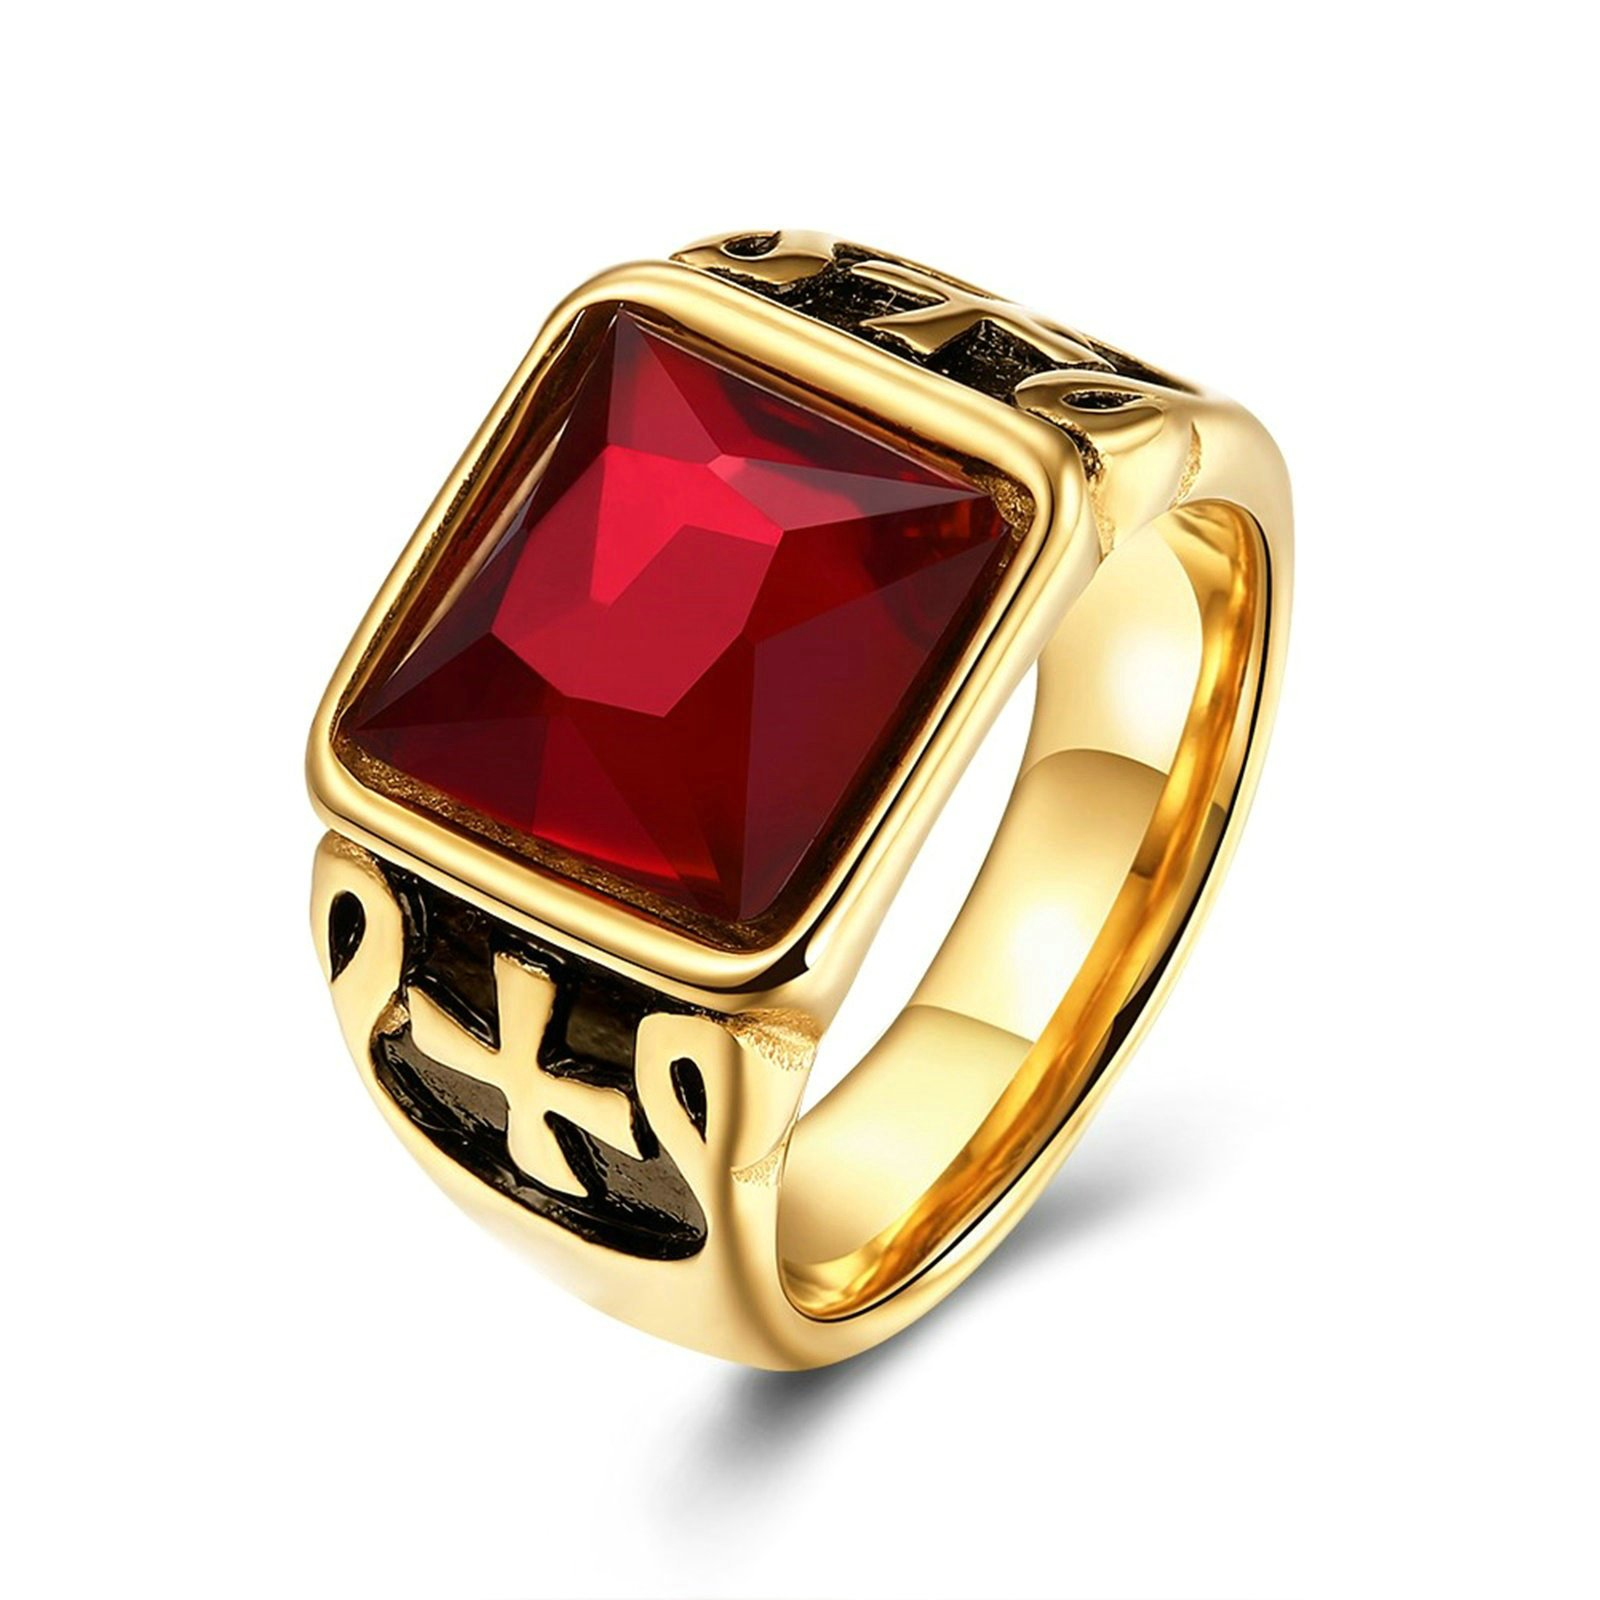 Epinki Gold Plated Men Ring Square Ring Red Cubic Zirconia Engagement Wedding Ring Size 7 Men Accessories